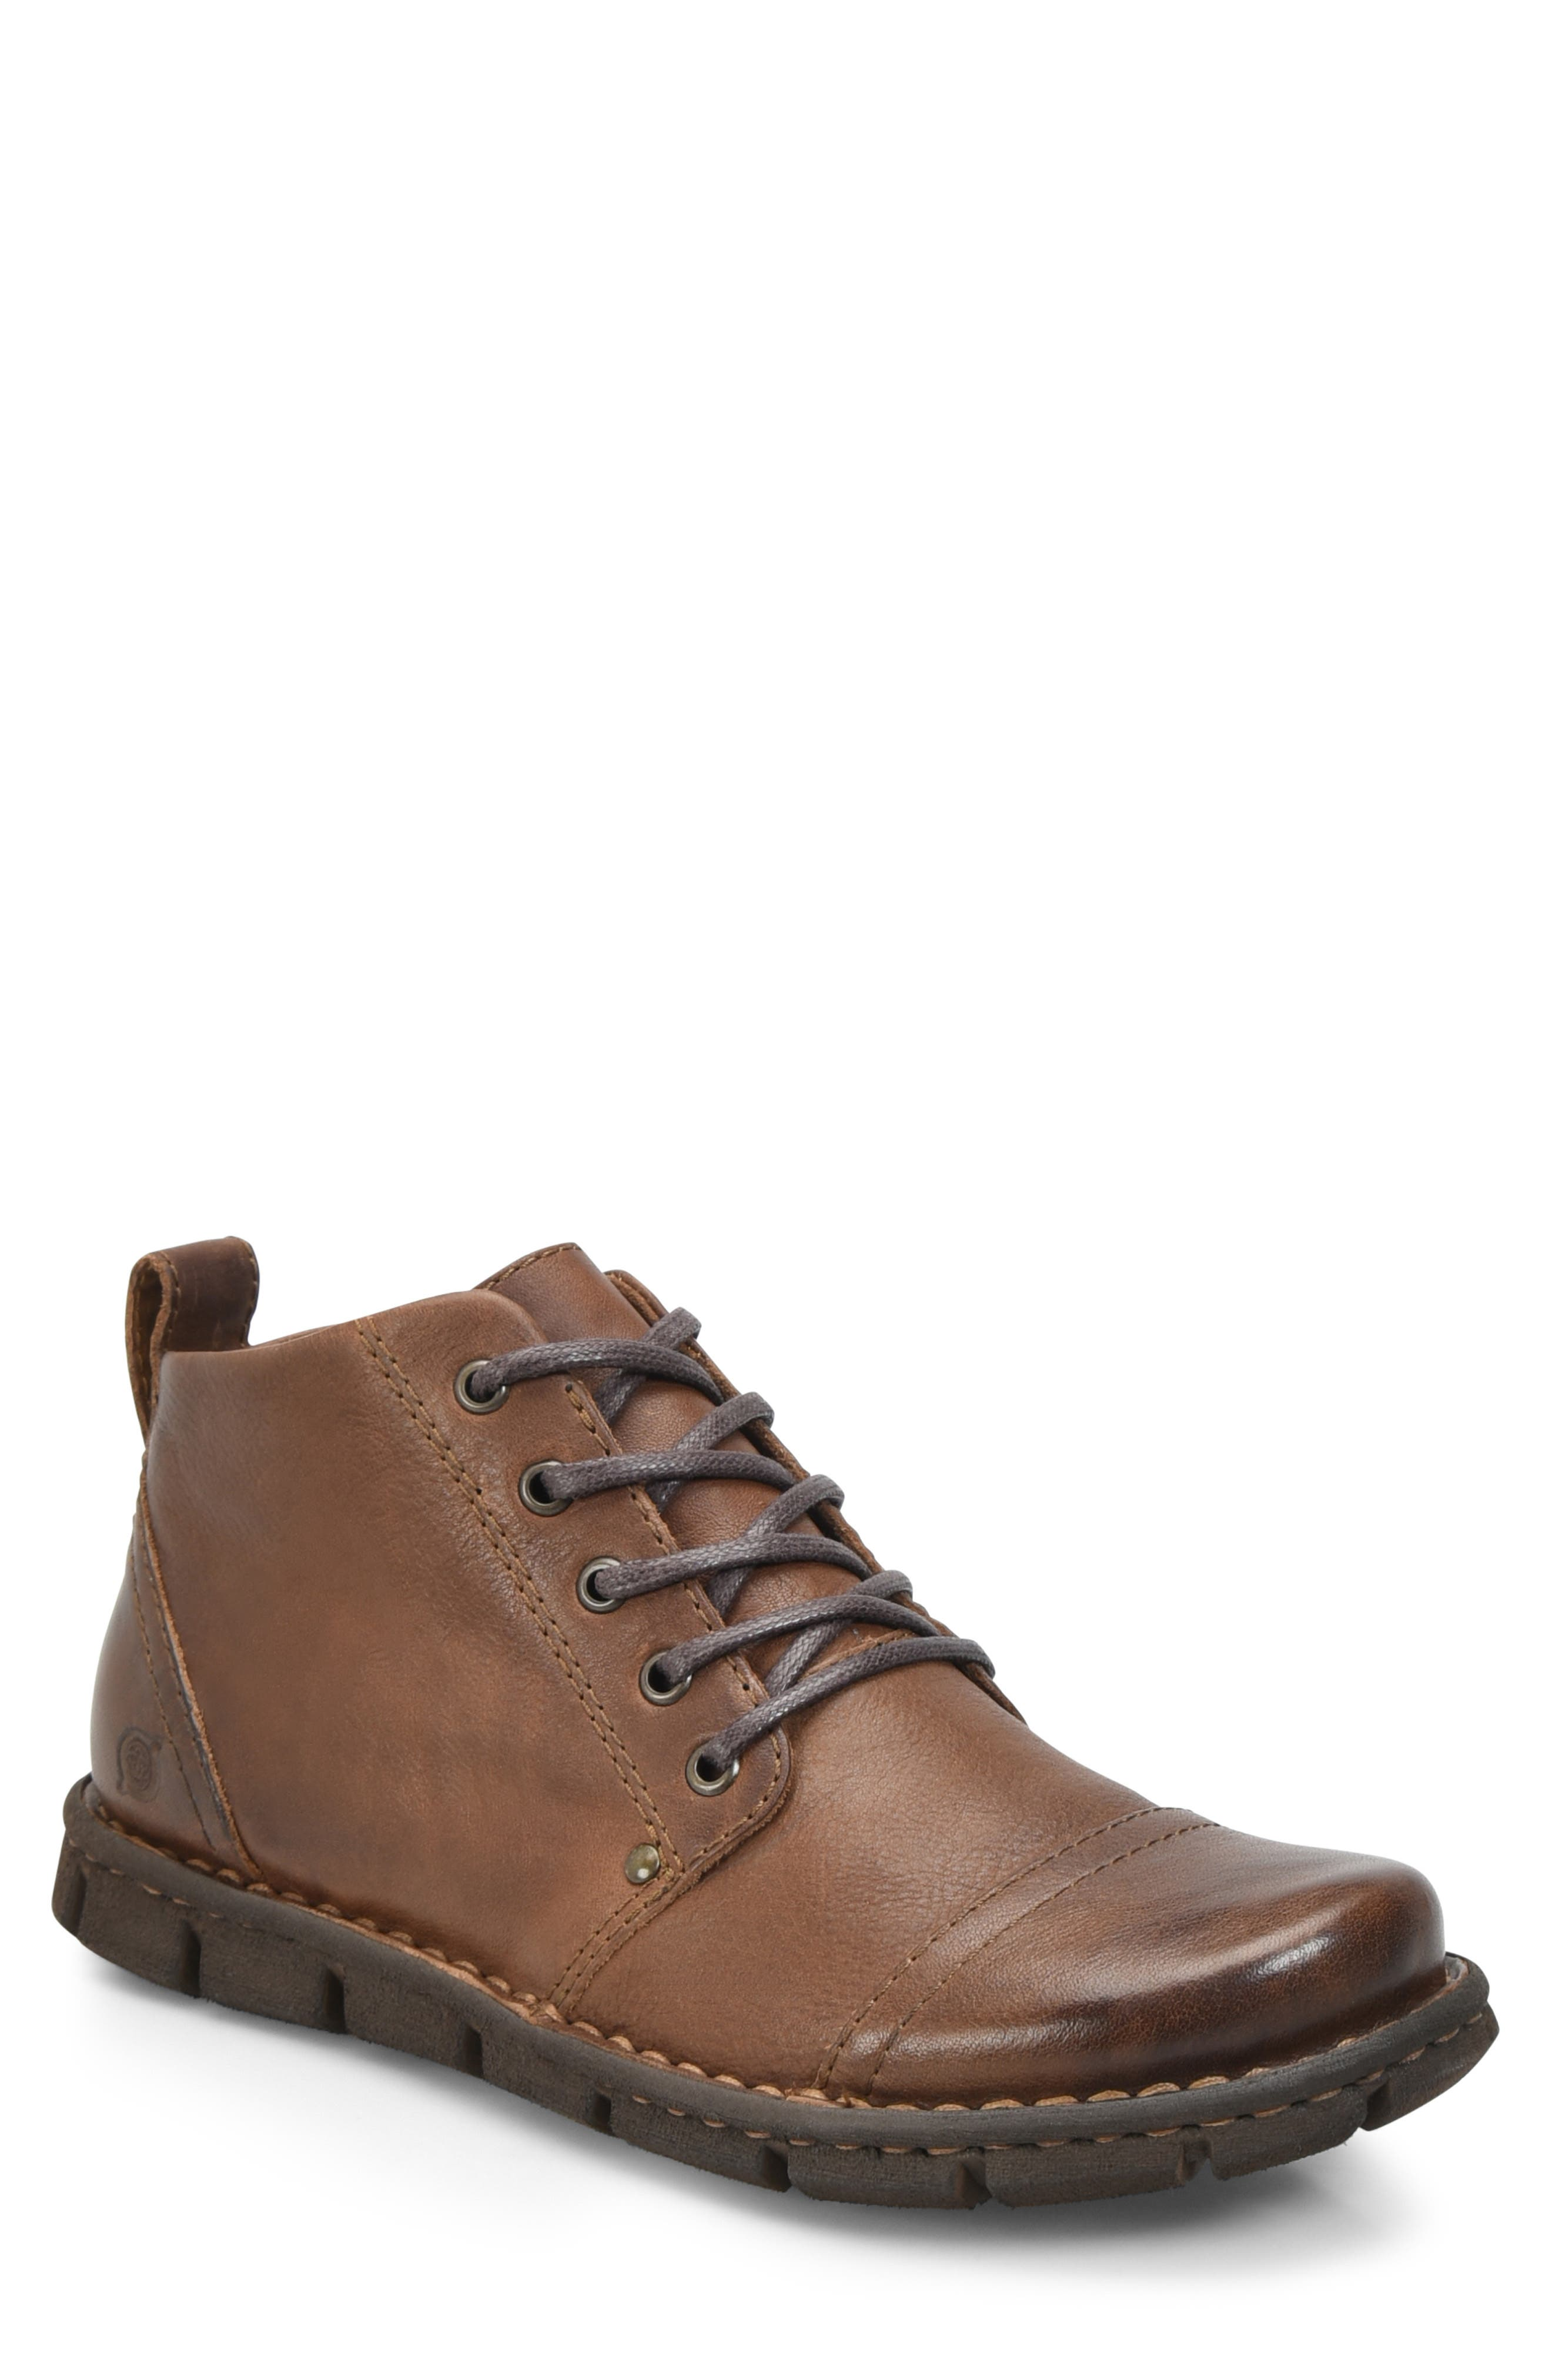 Boulder Cap Toe Boot,                             Main thumbnail 1, color,                             BROWN LEATHER